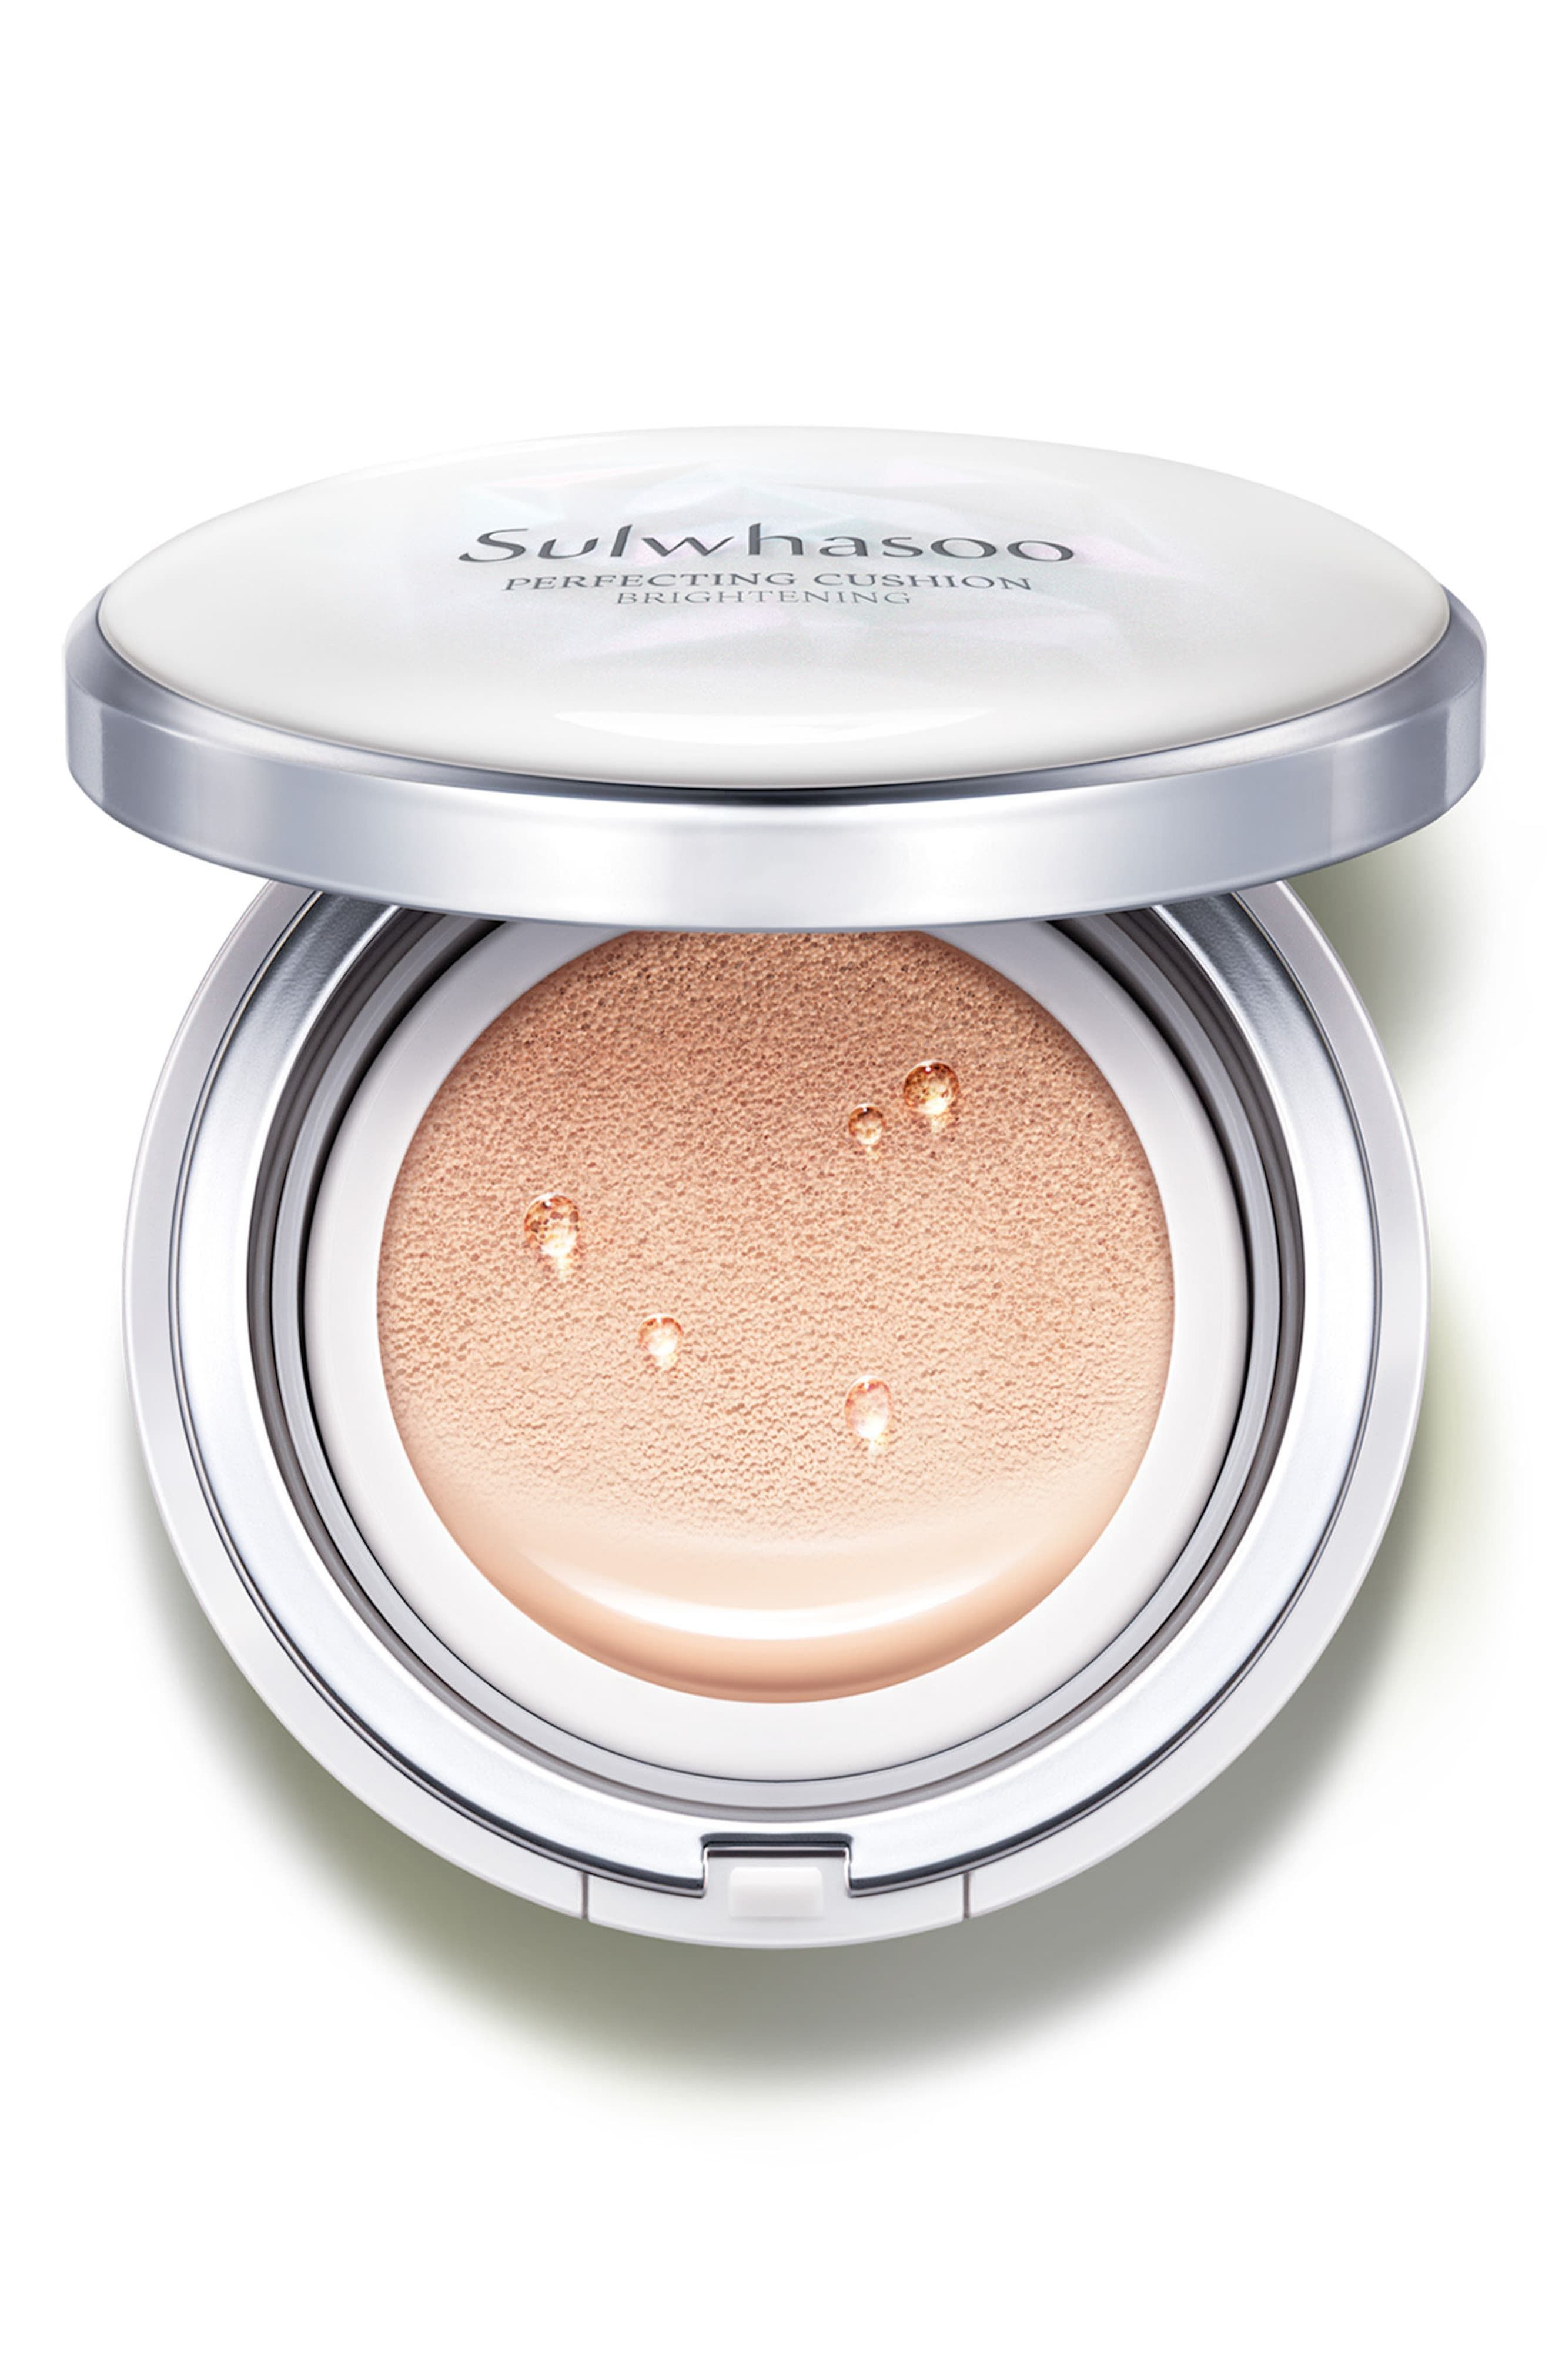 Sulwhasoo Perfecting Cushion Brightening Foundation With Images